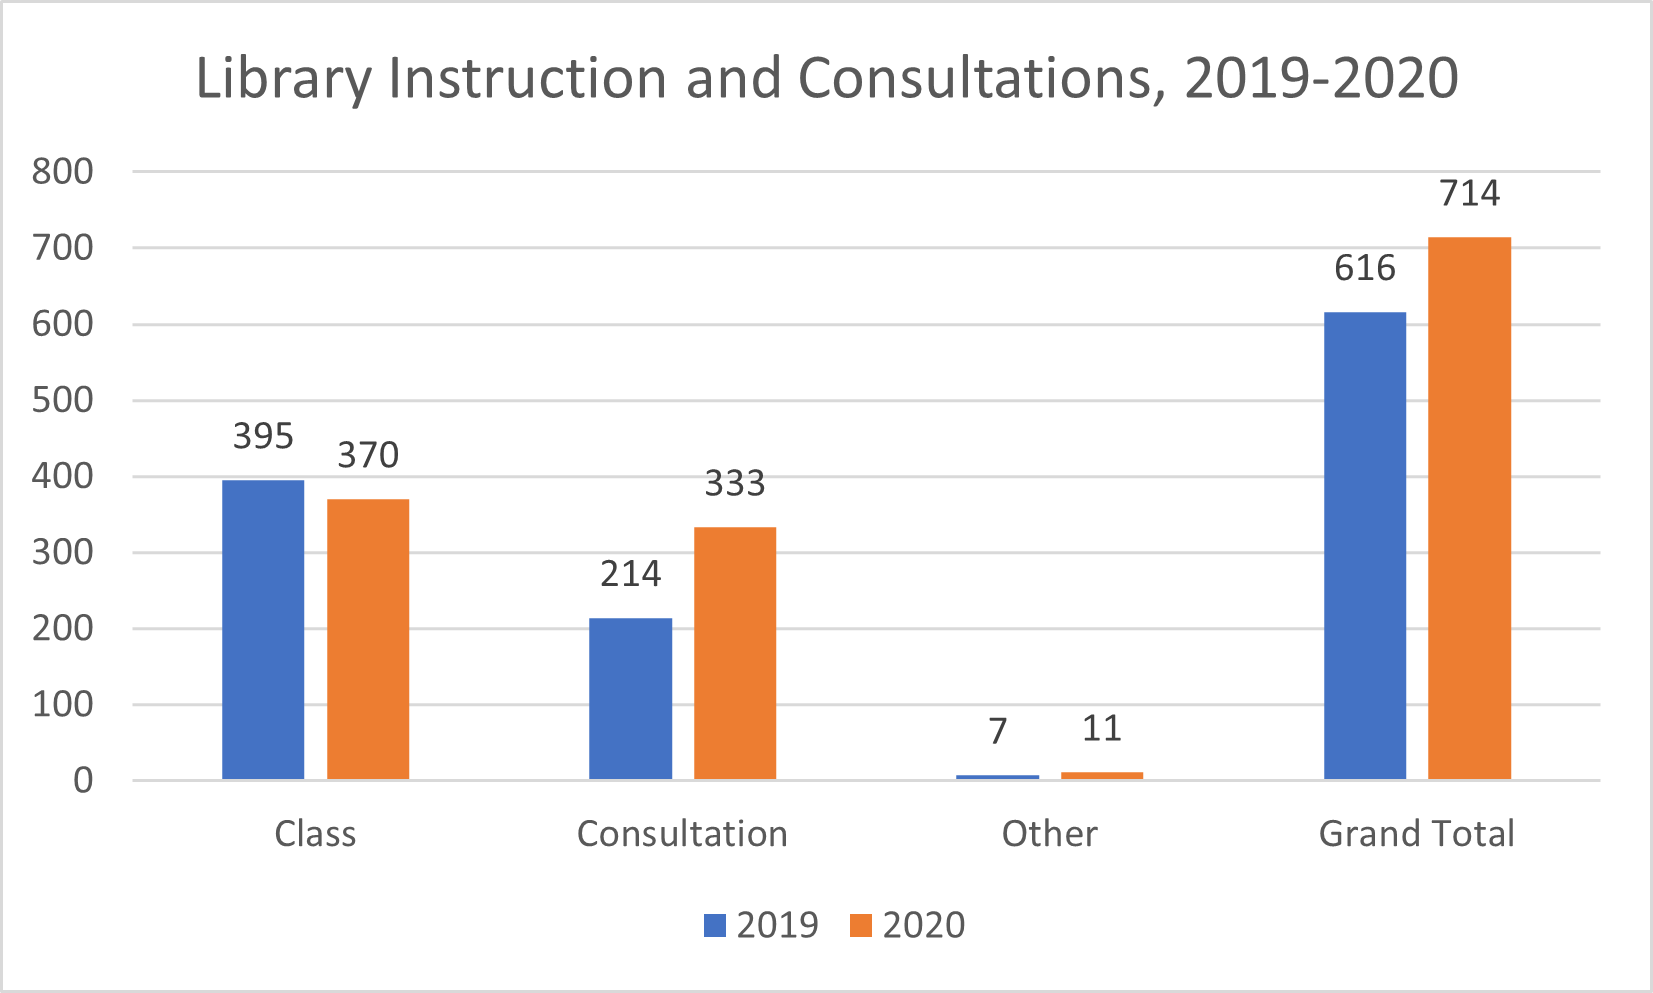 chart comparing instruction and research consultations between 2019 and 2020